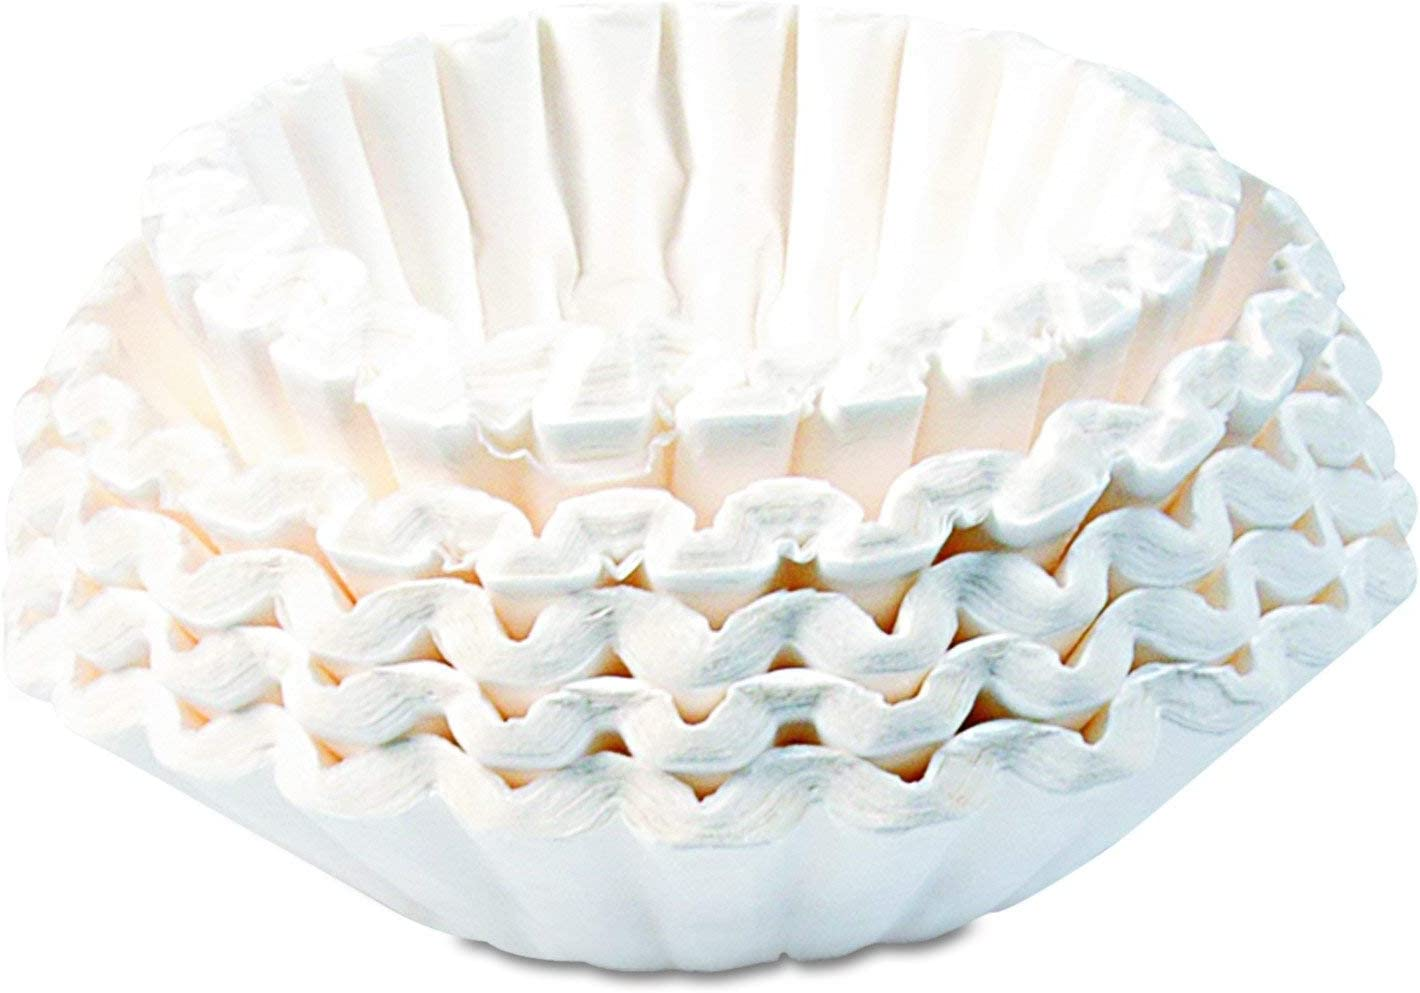 Bunn 1M5002 Commercial Coffee Filters, 12-Cup Size (Case of 1000) (CASE of 2000.)